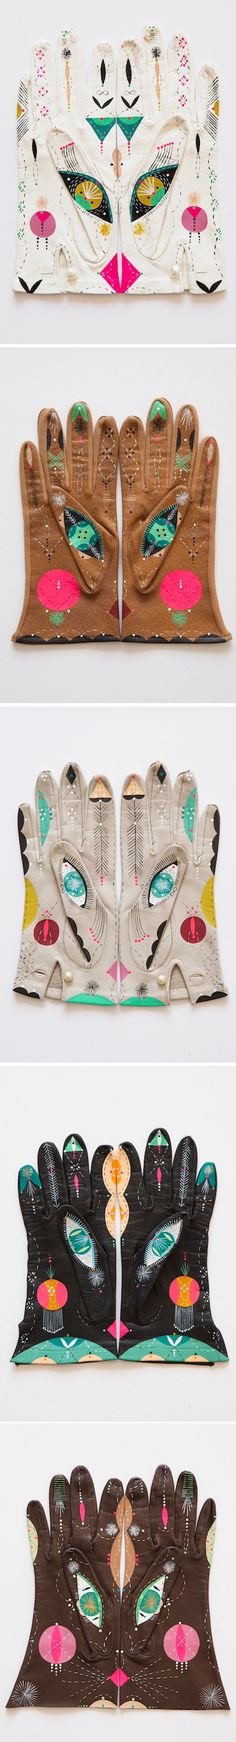 The Jealous Curator /// curated contemporary art /// bunnie reiss, cosmic animal gloves